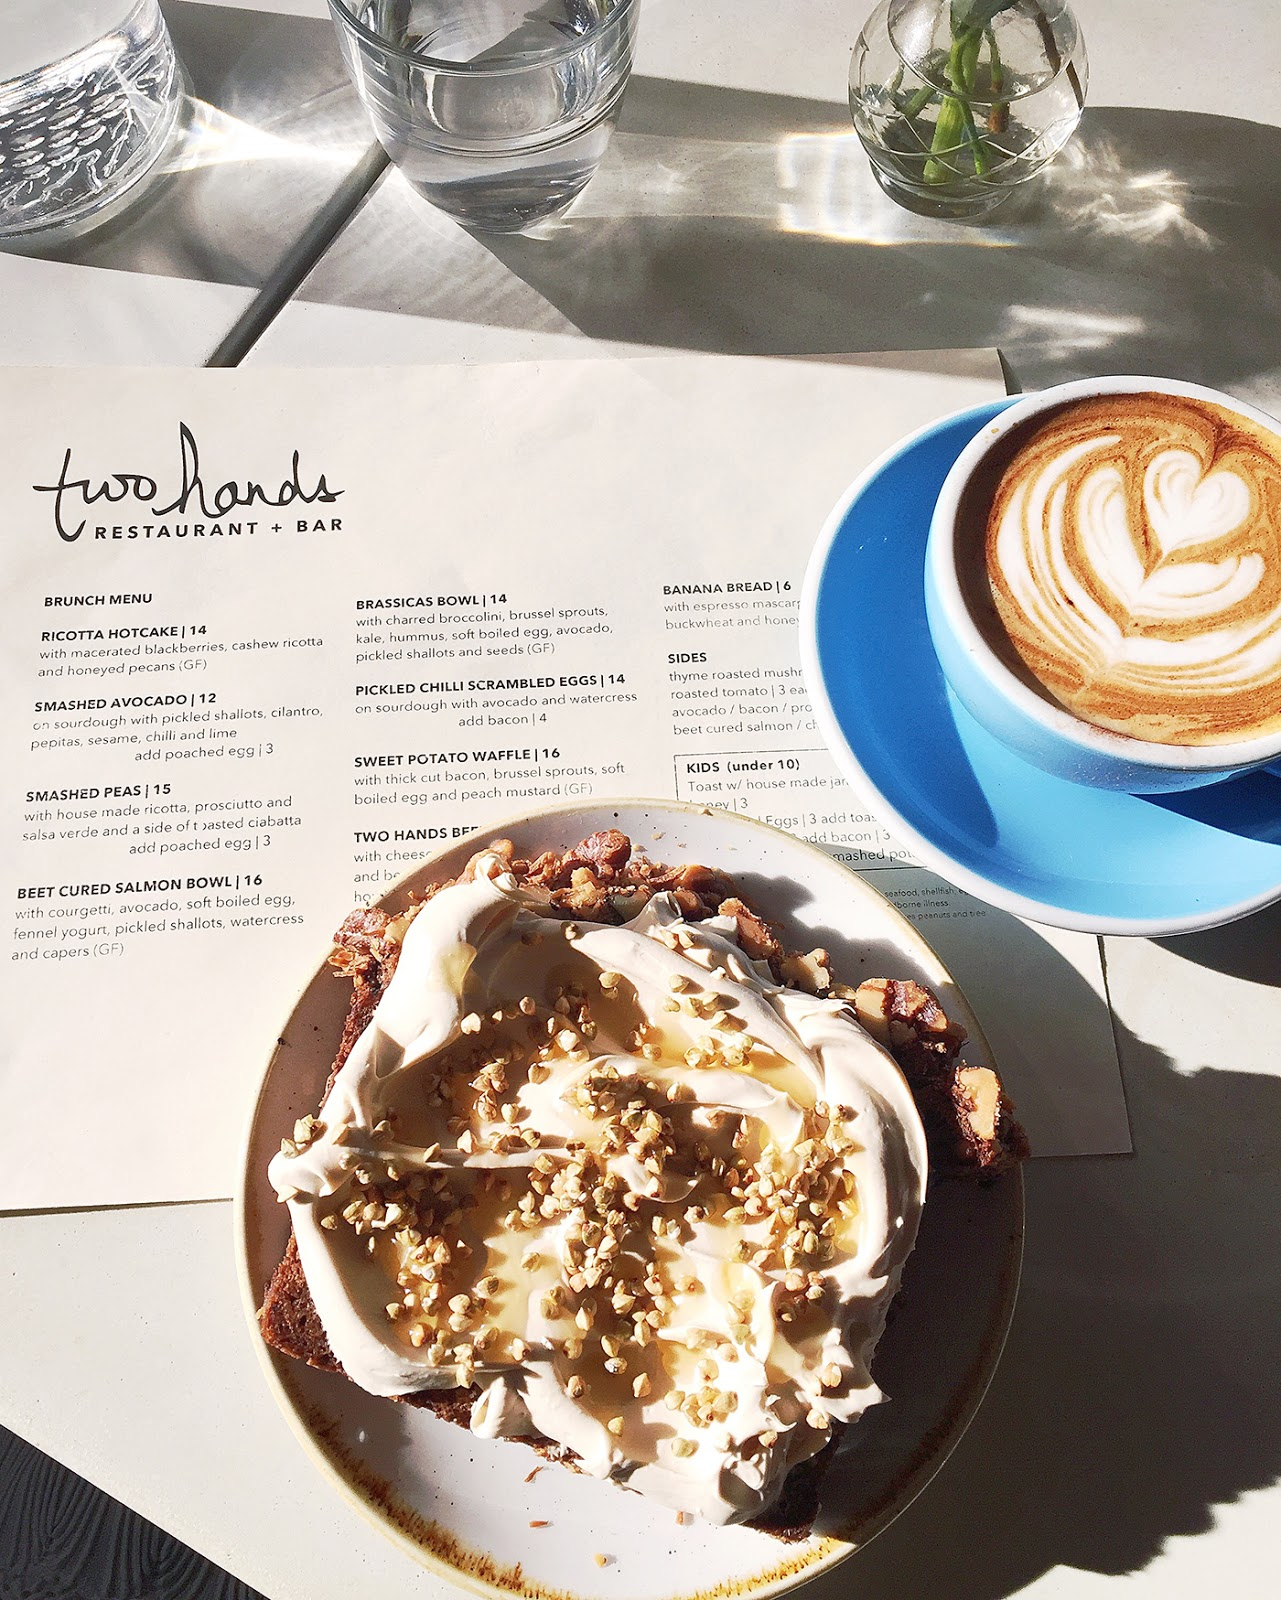 Breakfast at Two Hands Resturant, New York City, Best Brunch